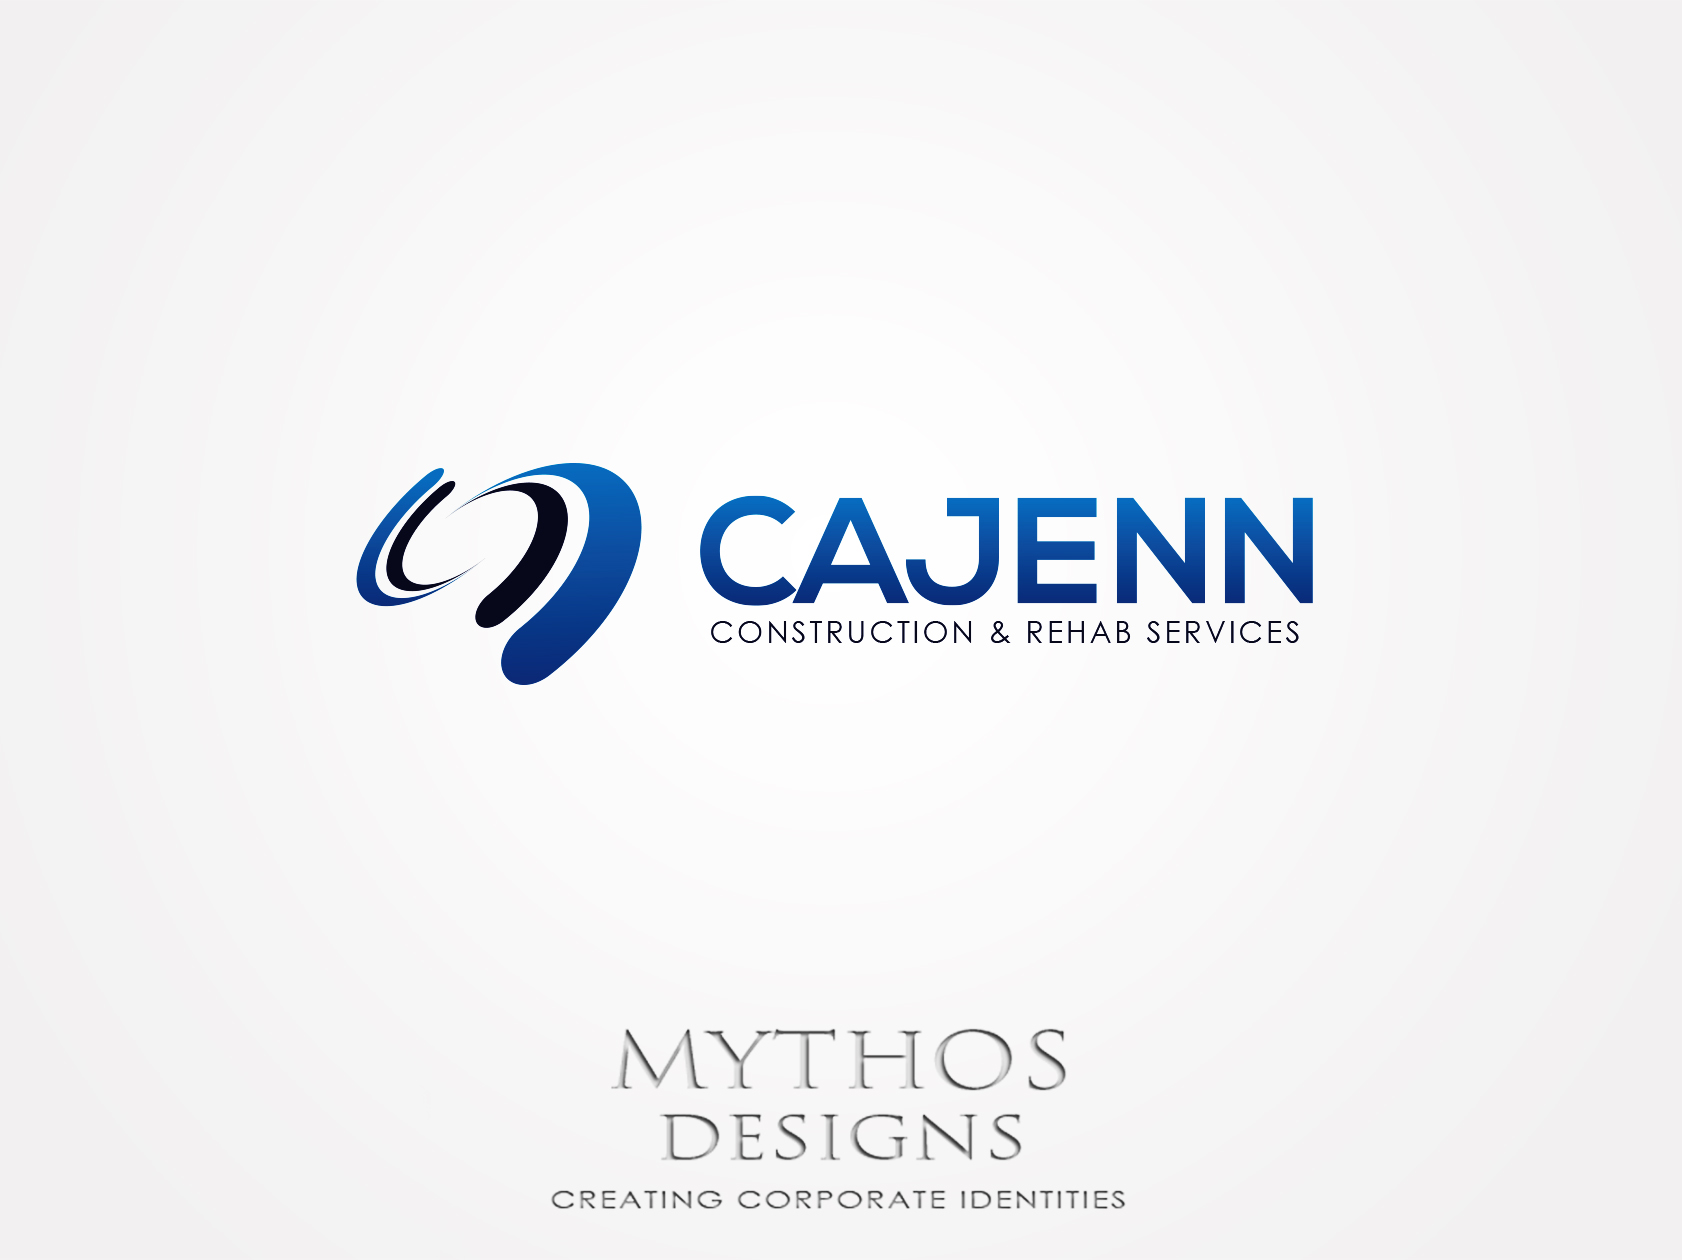 Logo Design by Mythos Designs - Entry No. 307 in the Logo Design Contest New Logo Design for CaJenn Construction & Rehab Services.